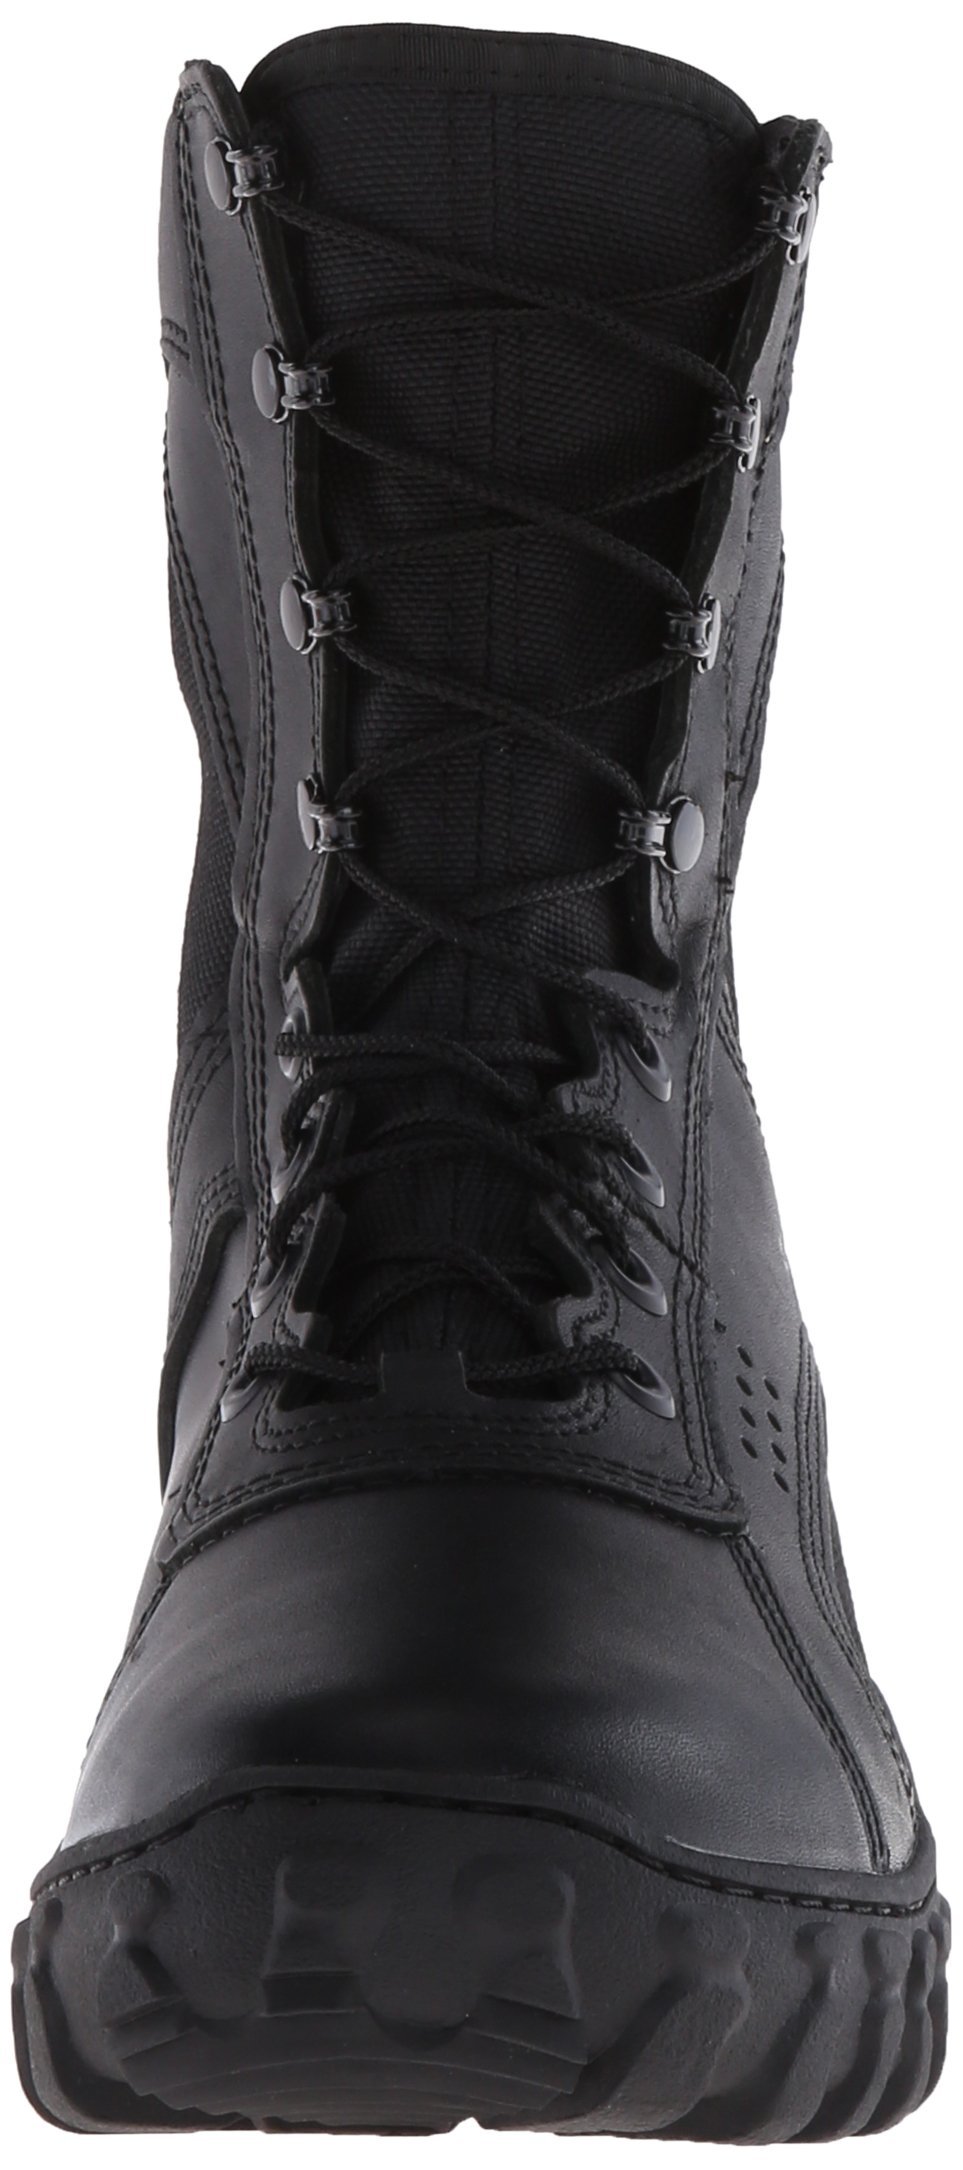 Rocky Men's FQ0000102 Boot, black, 12.5 W US by Rocky (Image #4)